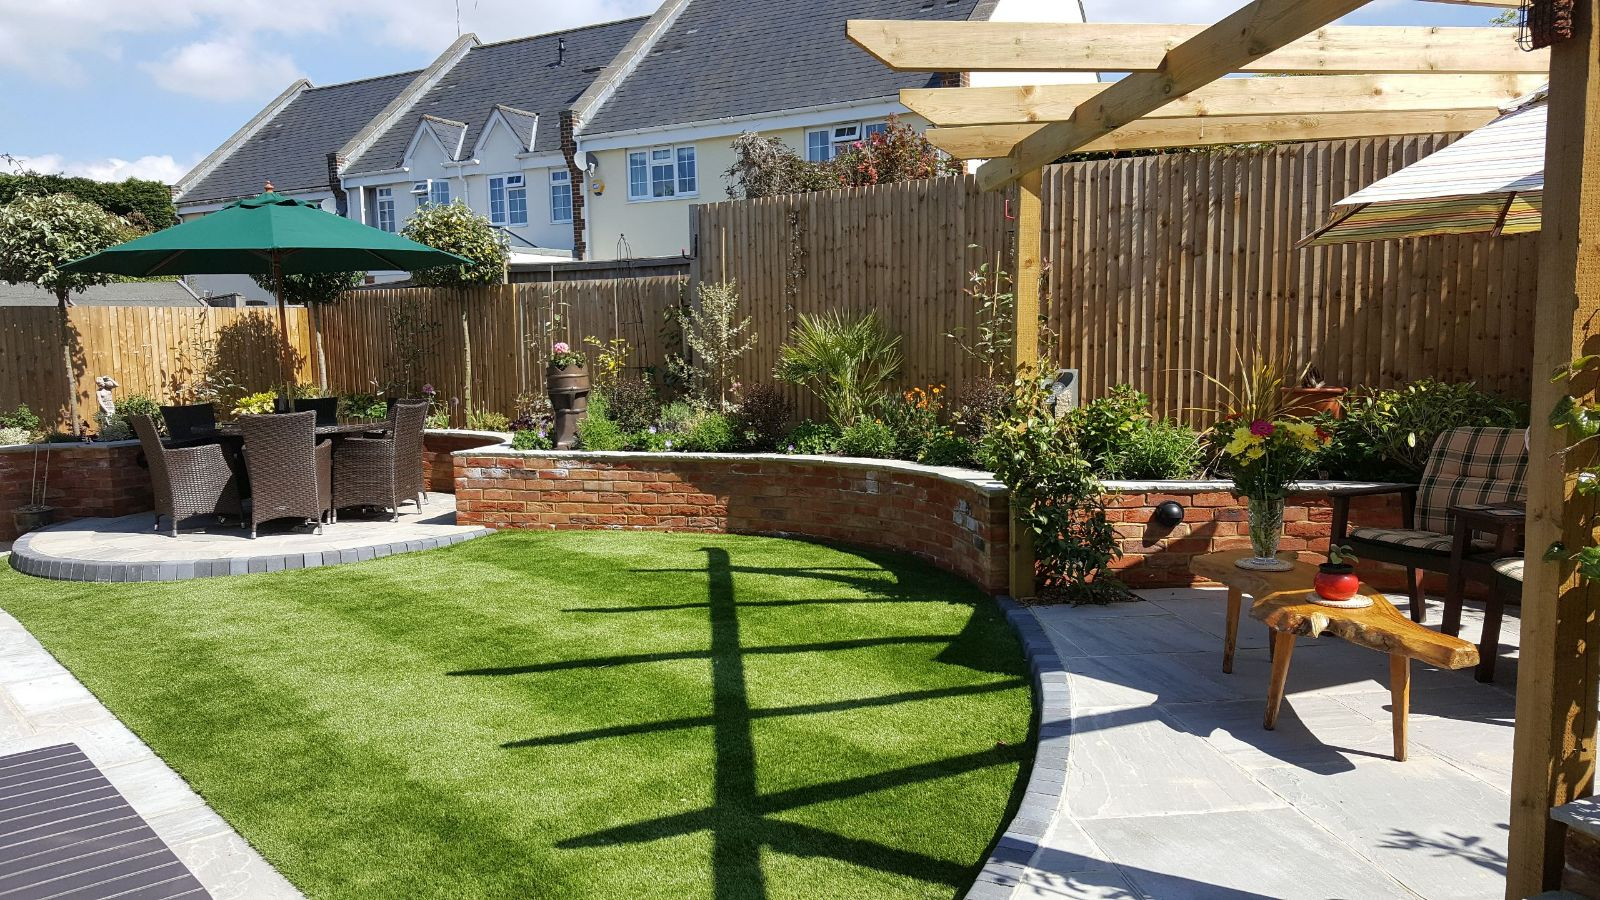 the sun shines down on this well designed garden in Horsham area